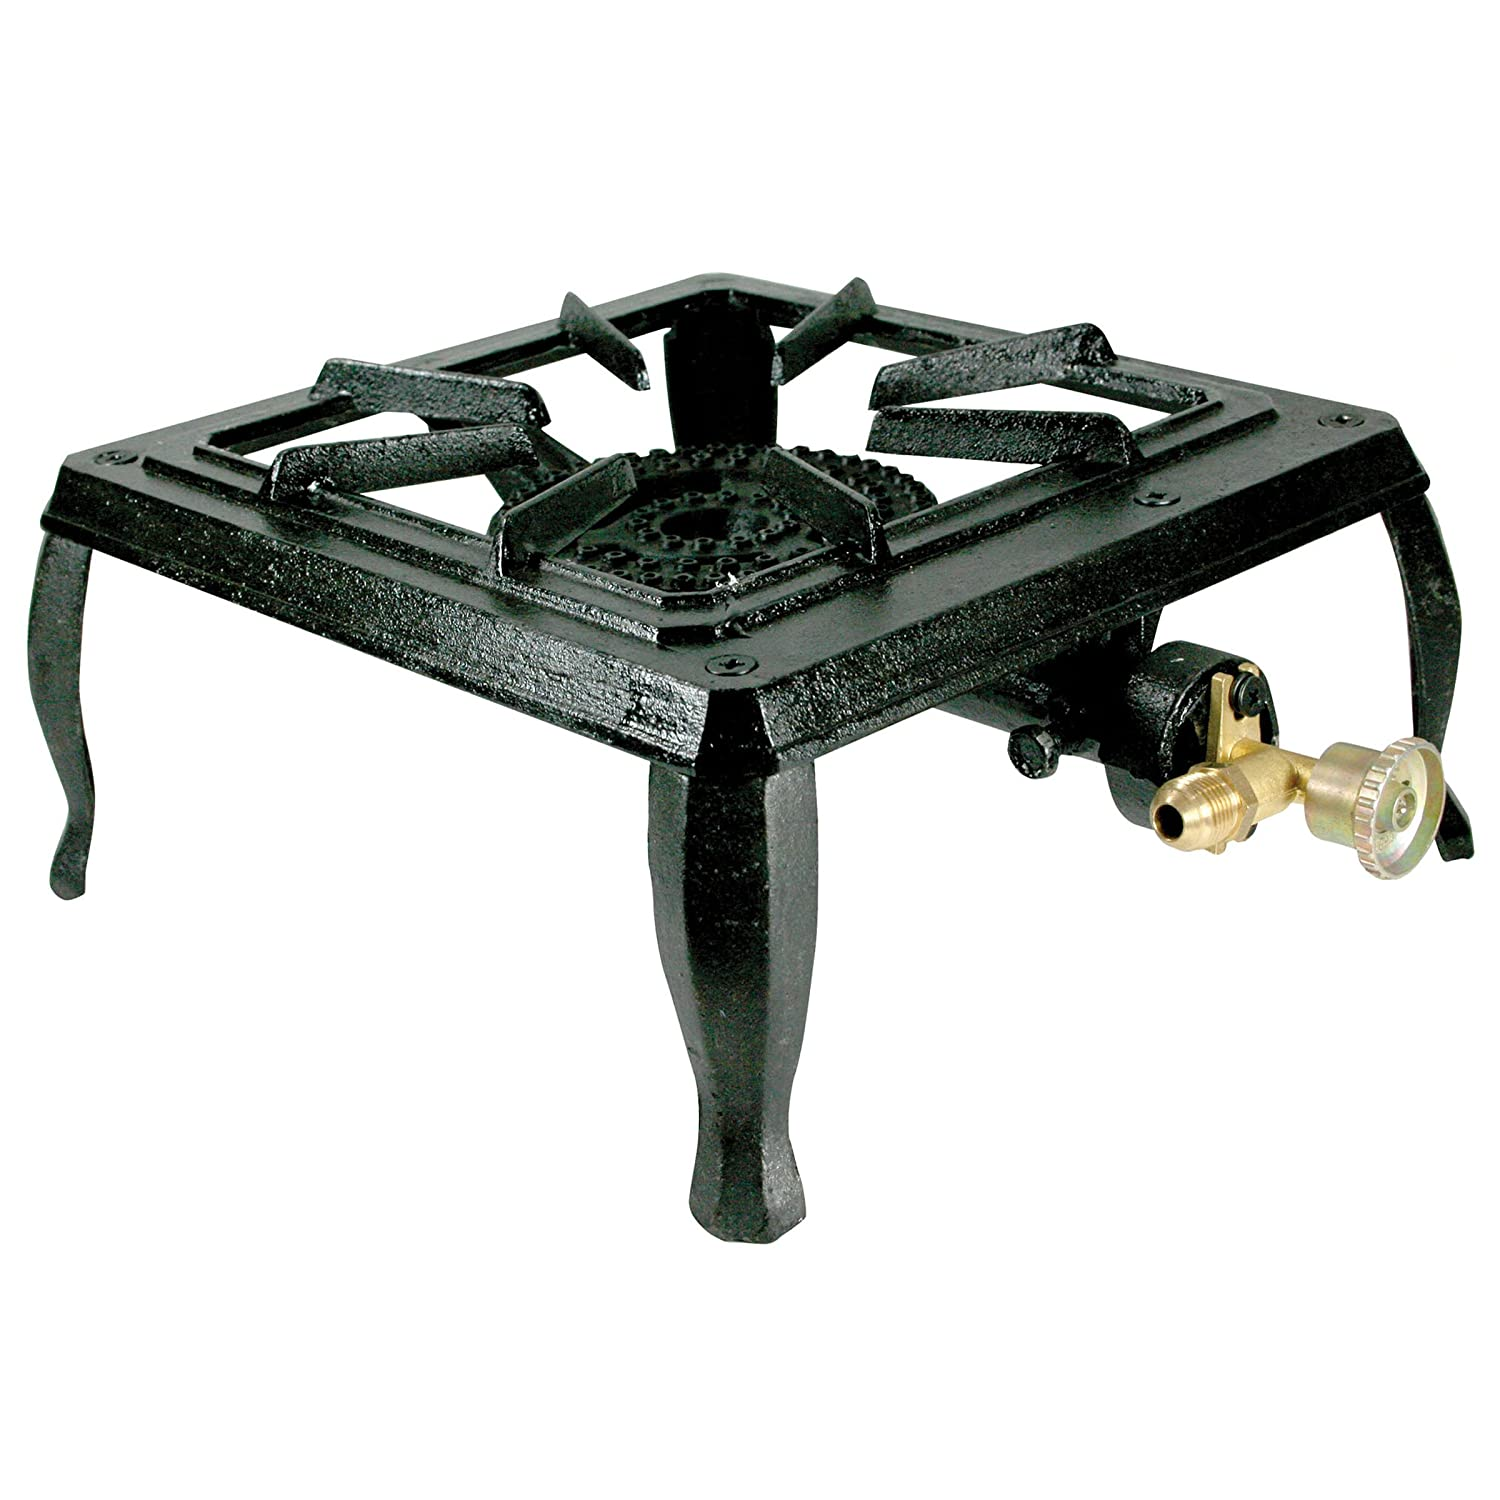 Amazon.com : Sportsman SBCIS Single Burner Cast Iron Stove ...